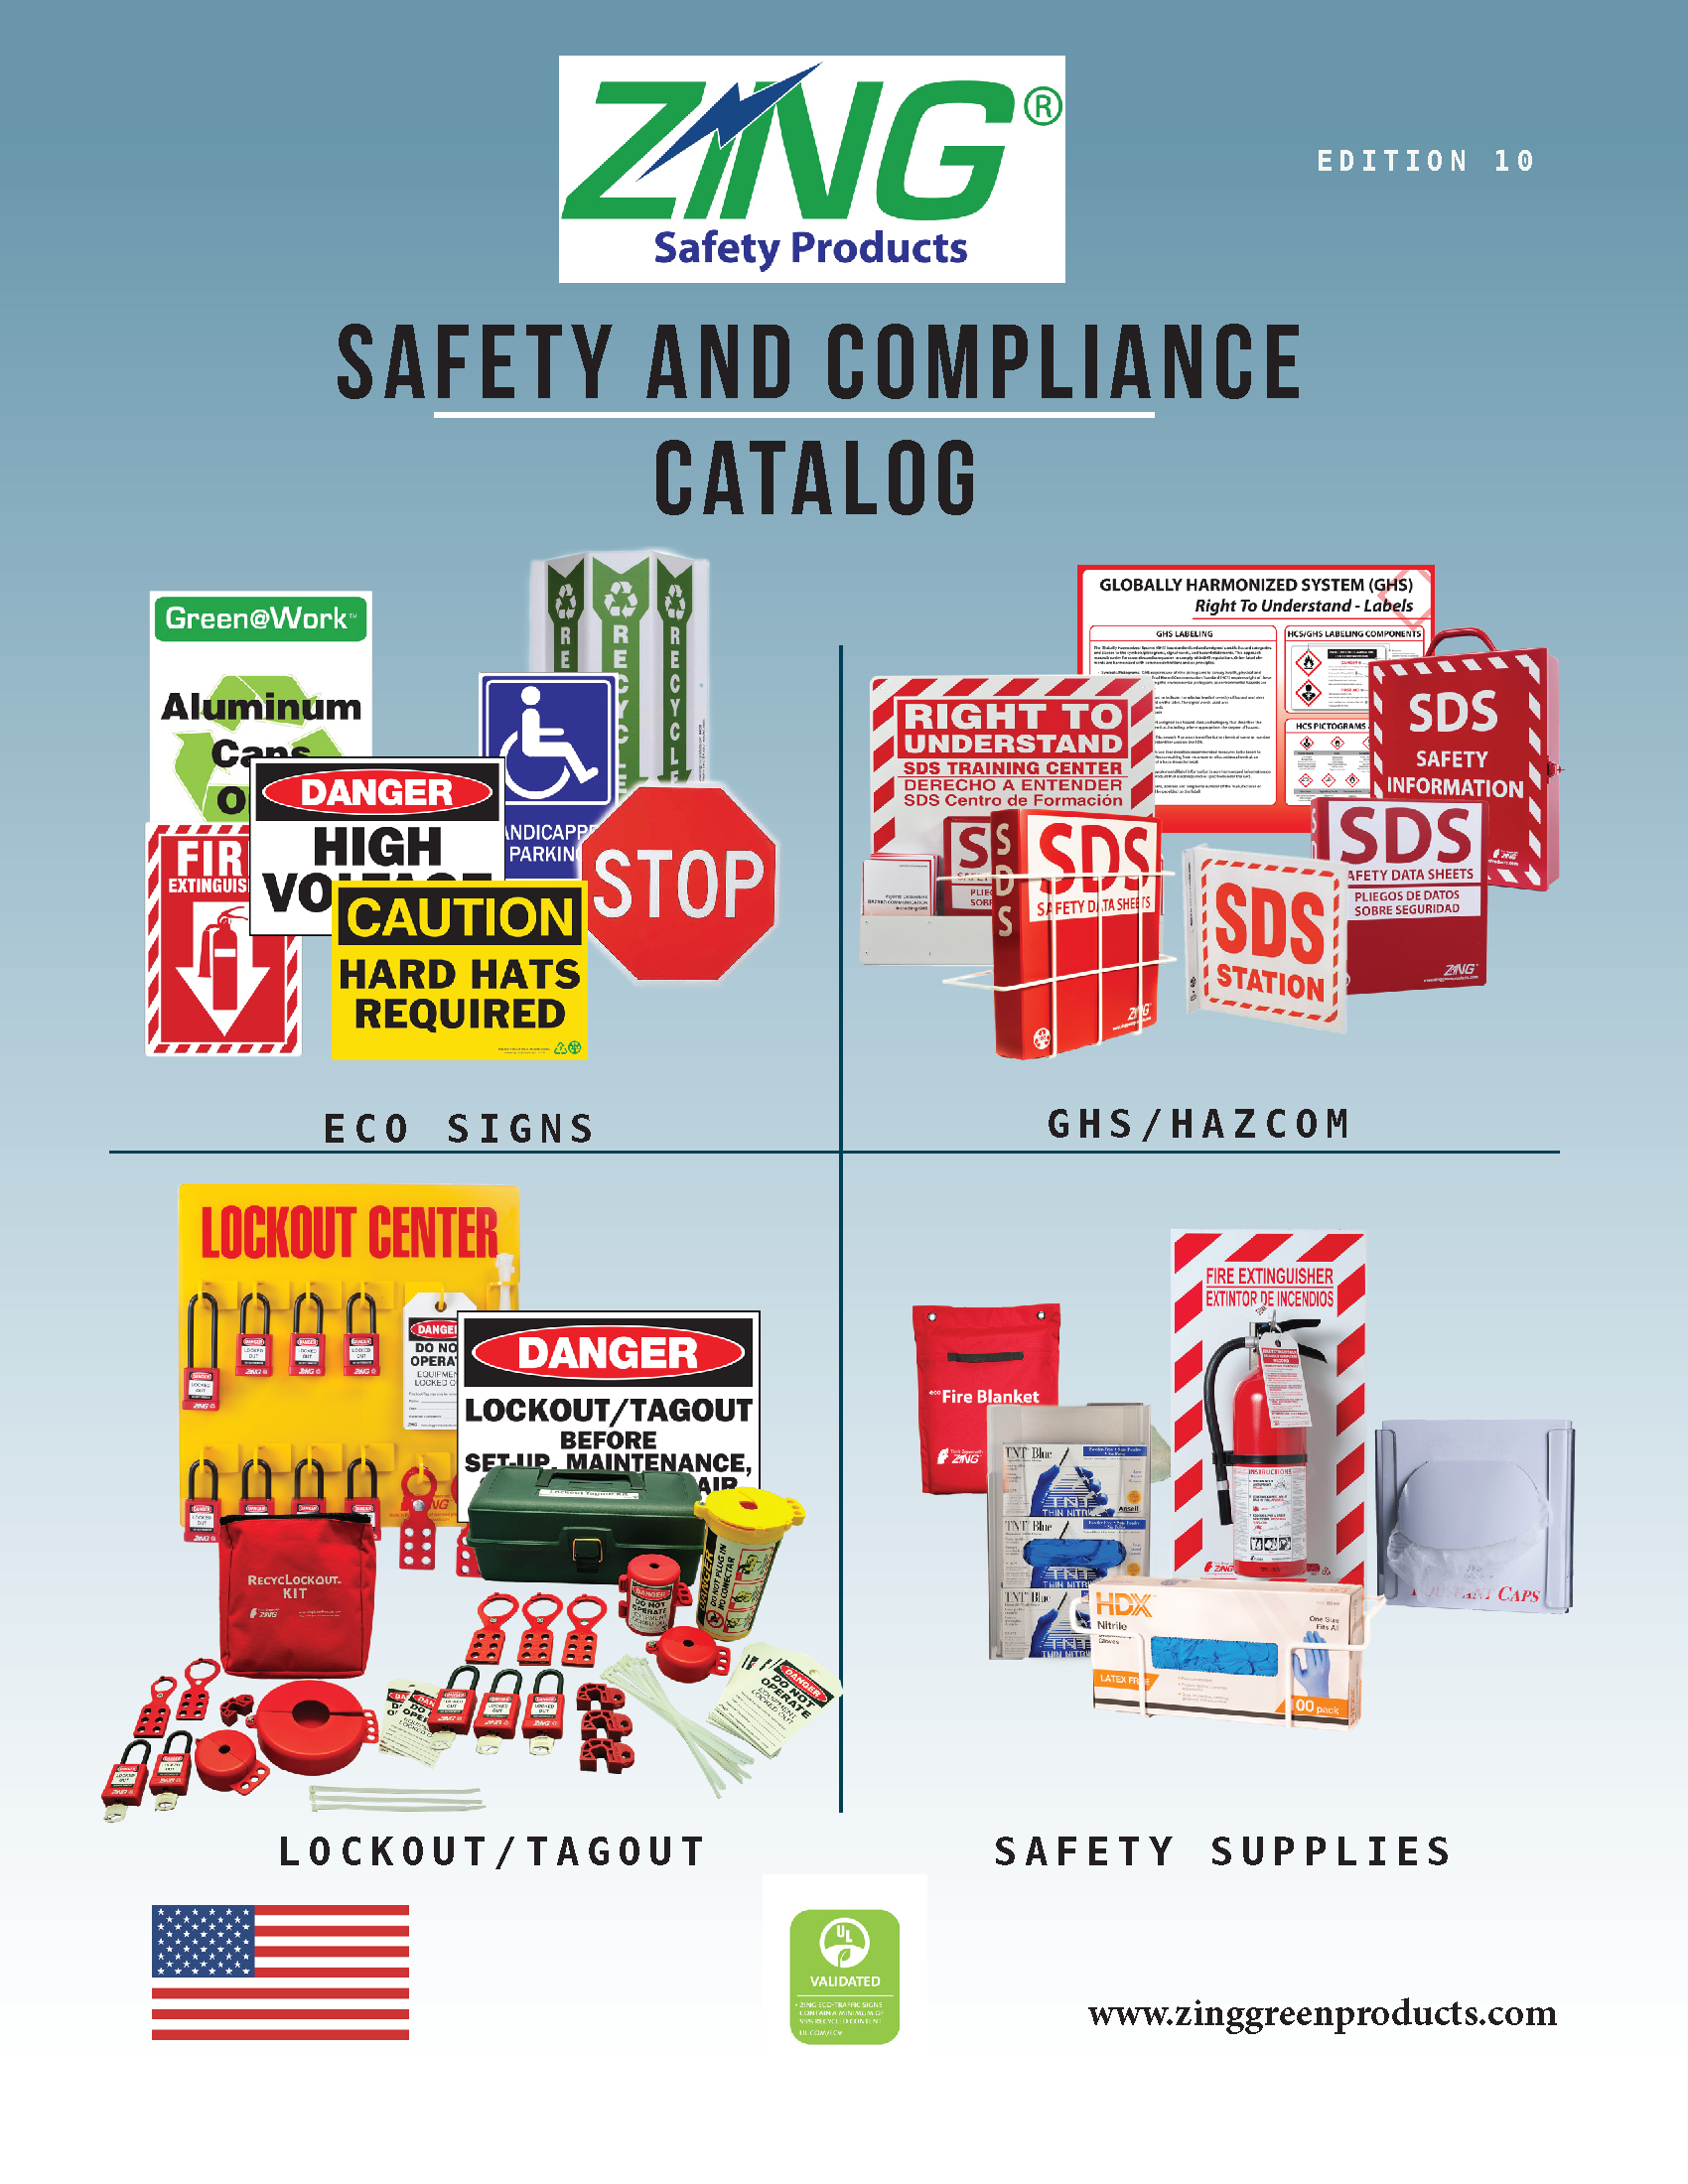 ZING Green Safety Products Catalog